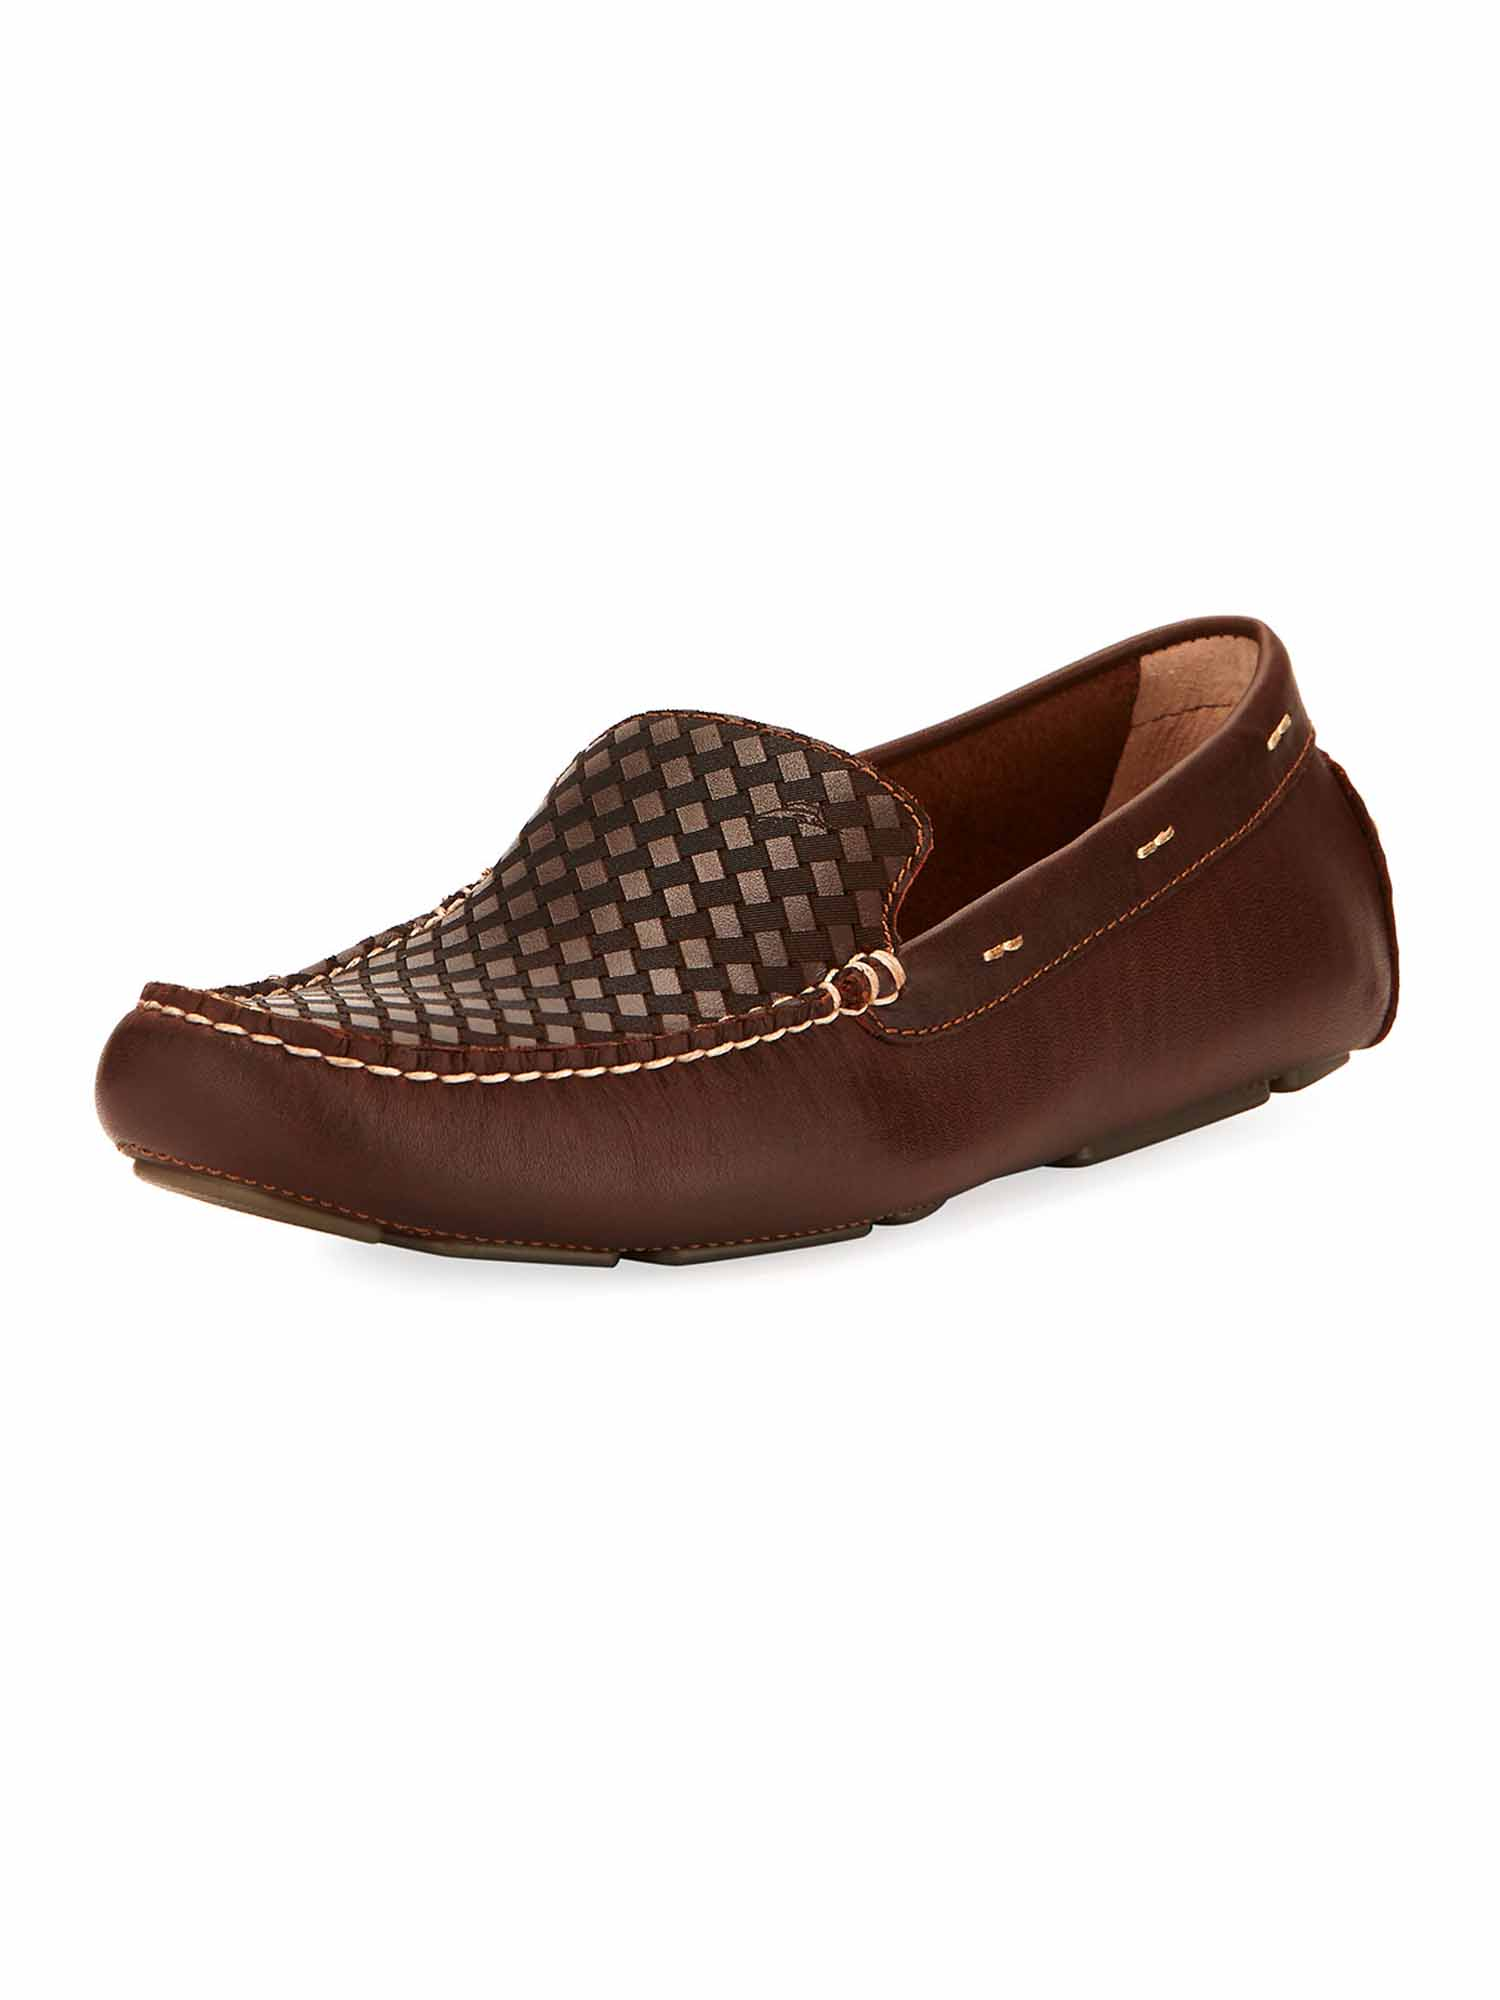 Tommy Bahama Mens Augustine Leather Slip-On Loafer (Dark Brown, 9) by